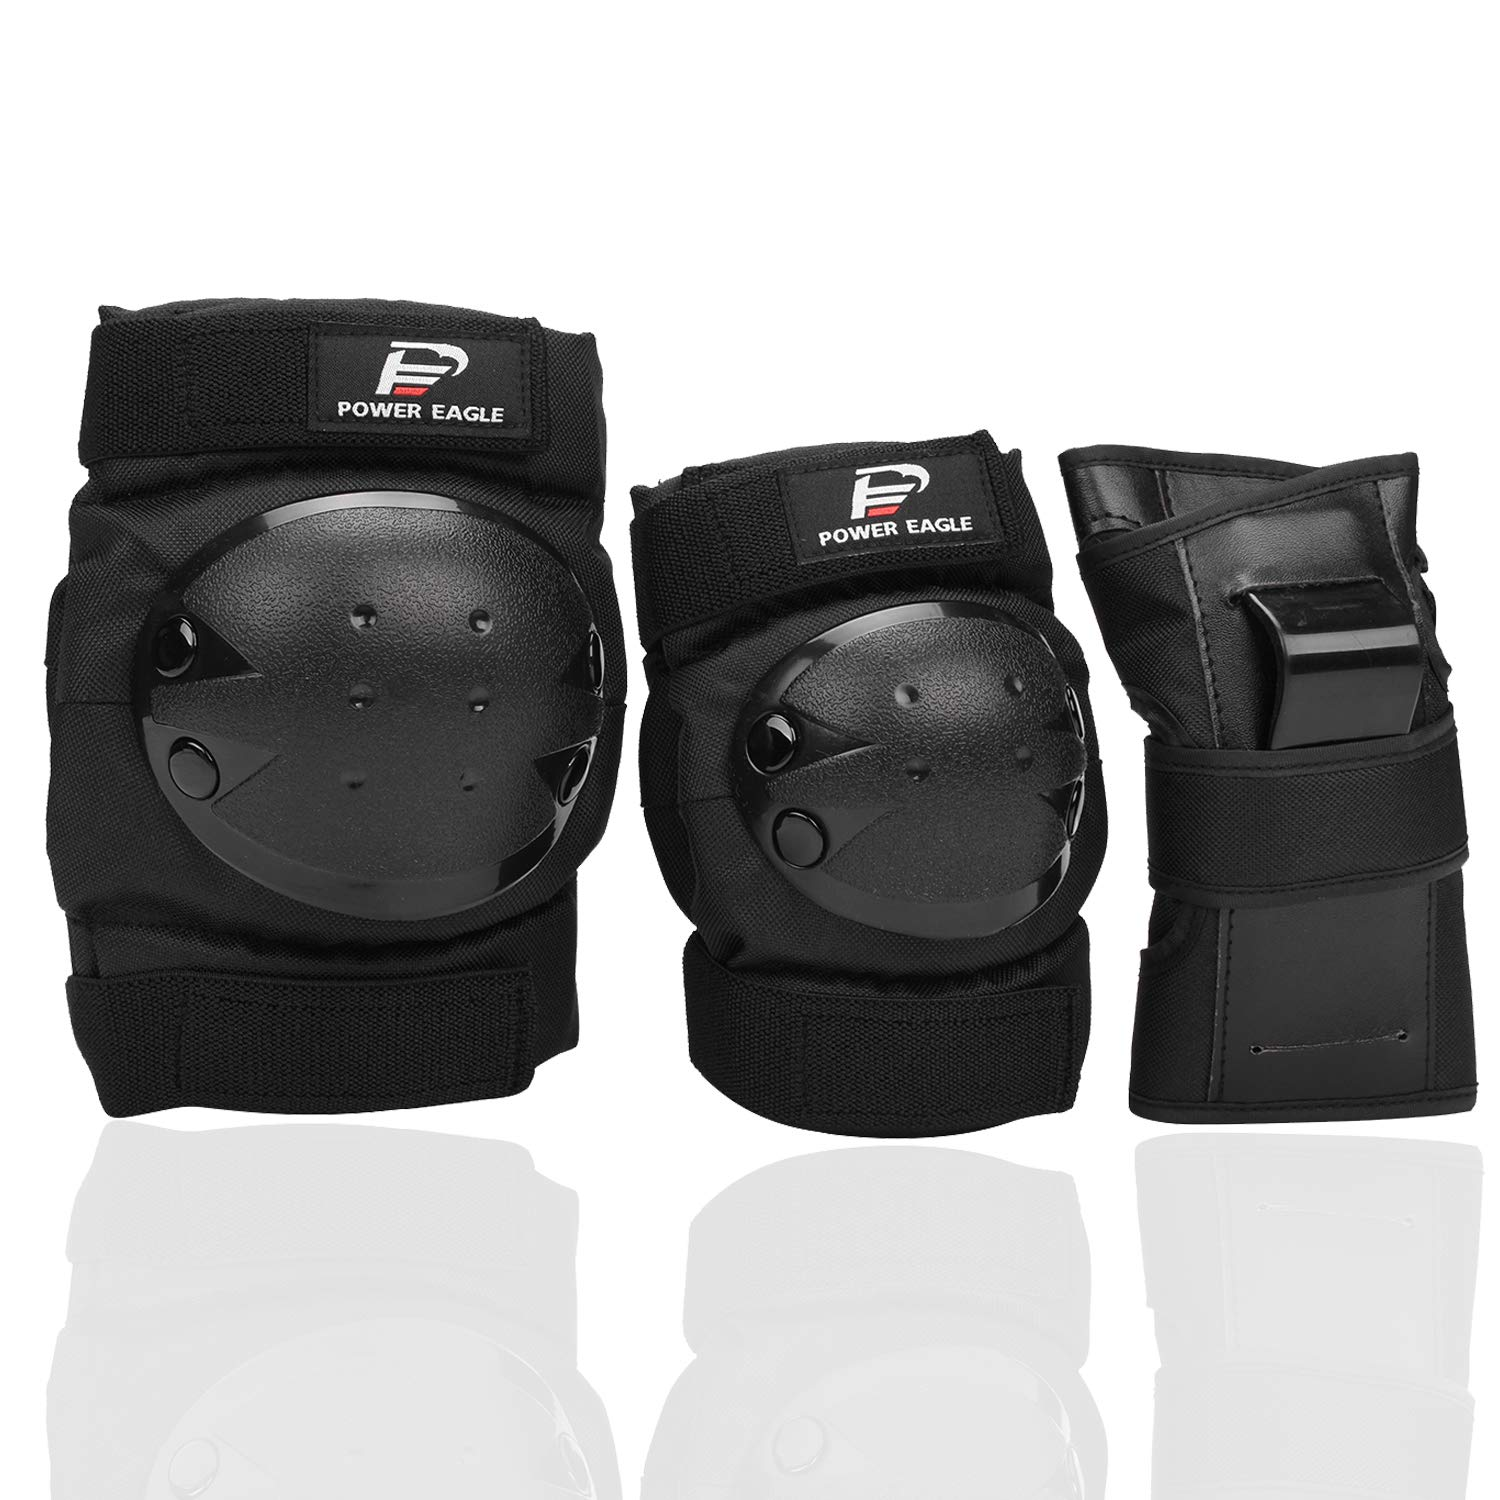 Power Eagle Kids Adults Knee Pads and Elbow Pads with Wrist Guards Protective Gear Suit for Scooter, Skateboard, Bicycle, Snowboard, Inline Skating, Roller Skating Safety Protection